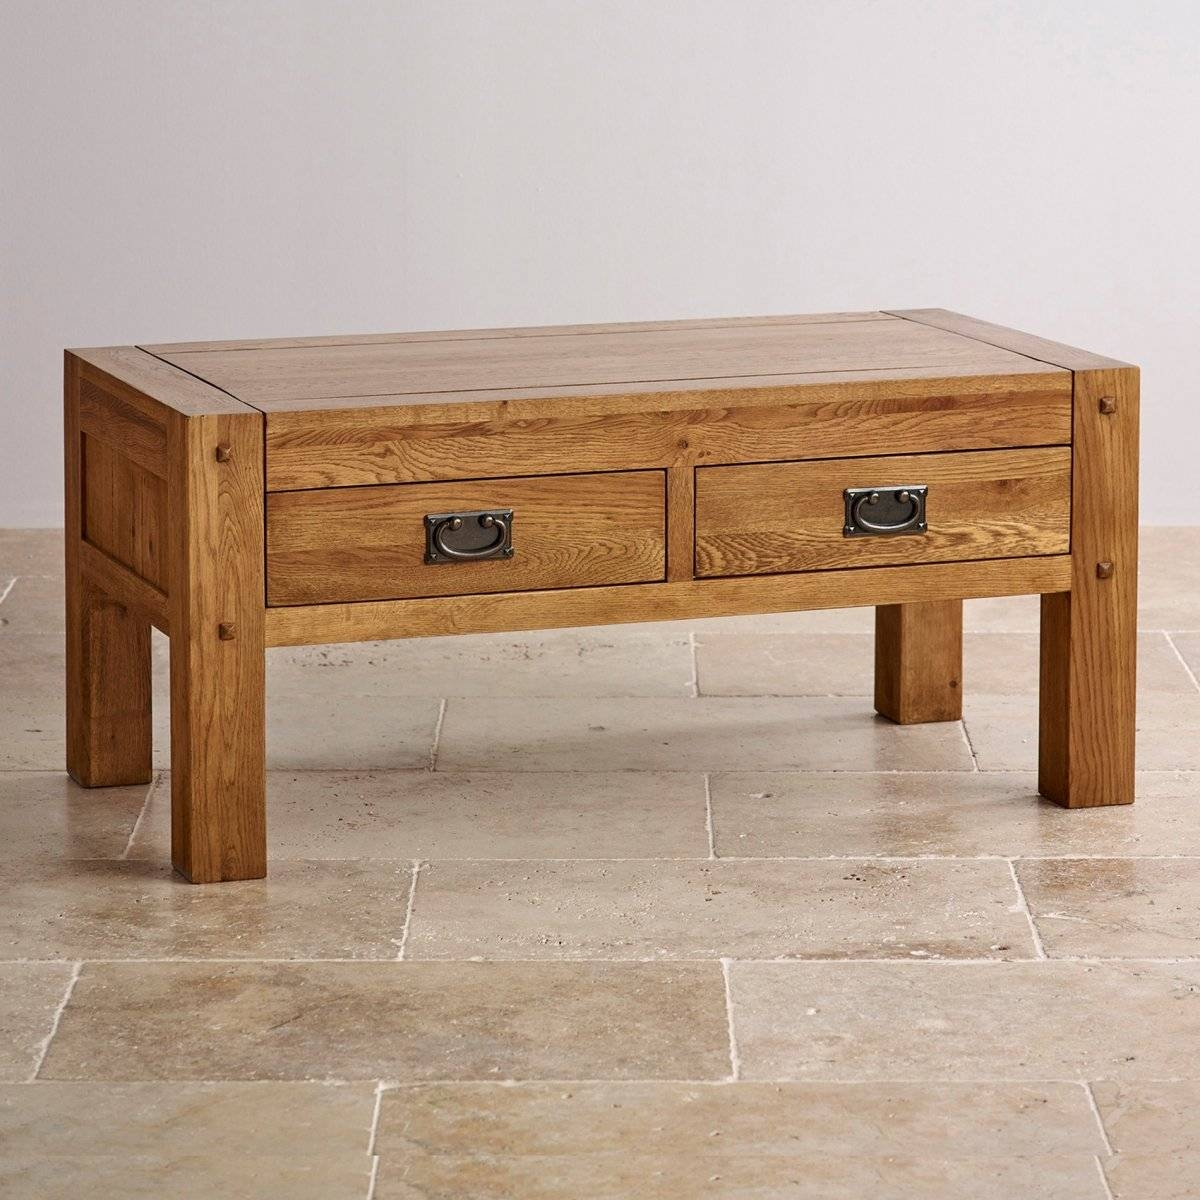 Quercus Coffee Table | Rustic Solid Oak | Oak Furniture Land inside Oak Furniture Coffee Tables (Image 13 of 15)